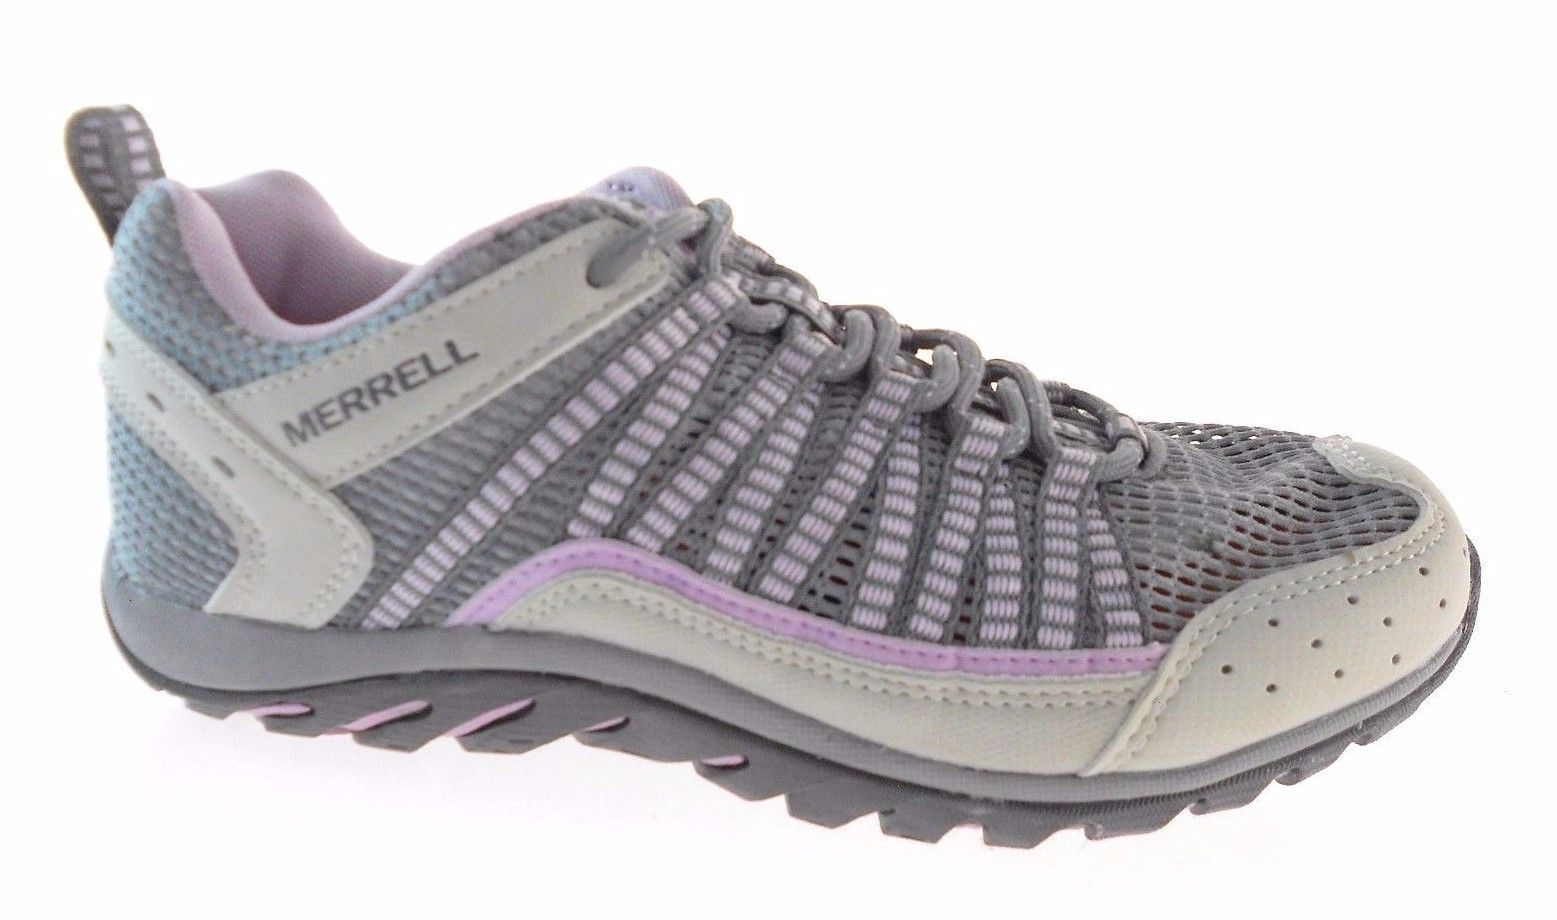 Primary image for MERRELL STORM RUSH WOMEN'S ICE/ORCHID TRAIL WATER SHOES Sz 7, #J123999C